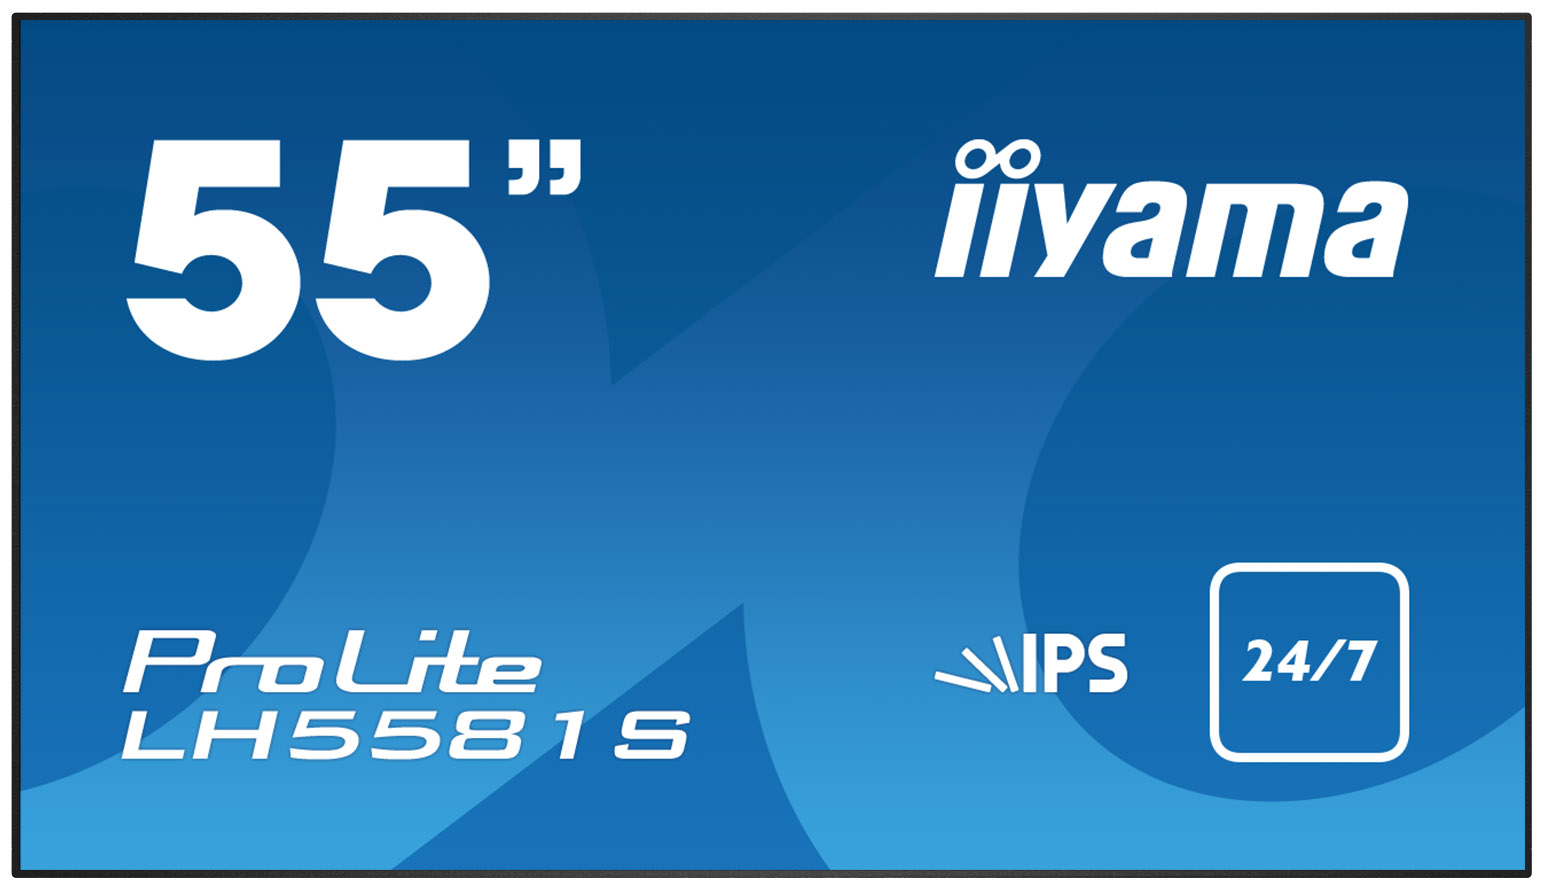 "55"" LCD iiyama ProLite LH5581S-B1 -FullHD,IPS,8ms,500cd,USB media player,RJ45,RS232C,repro,OPS,24/7"